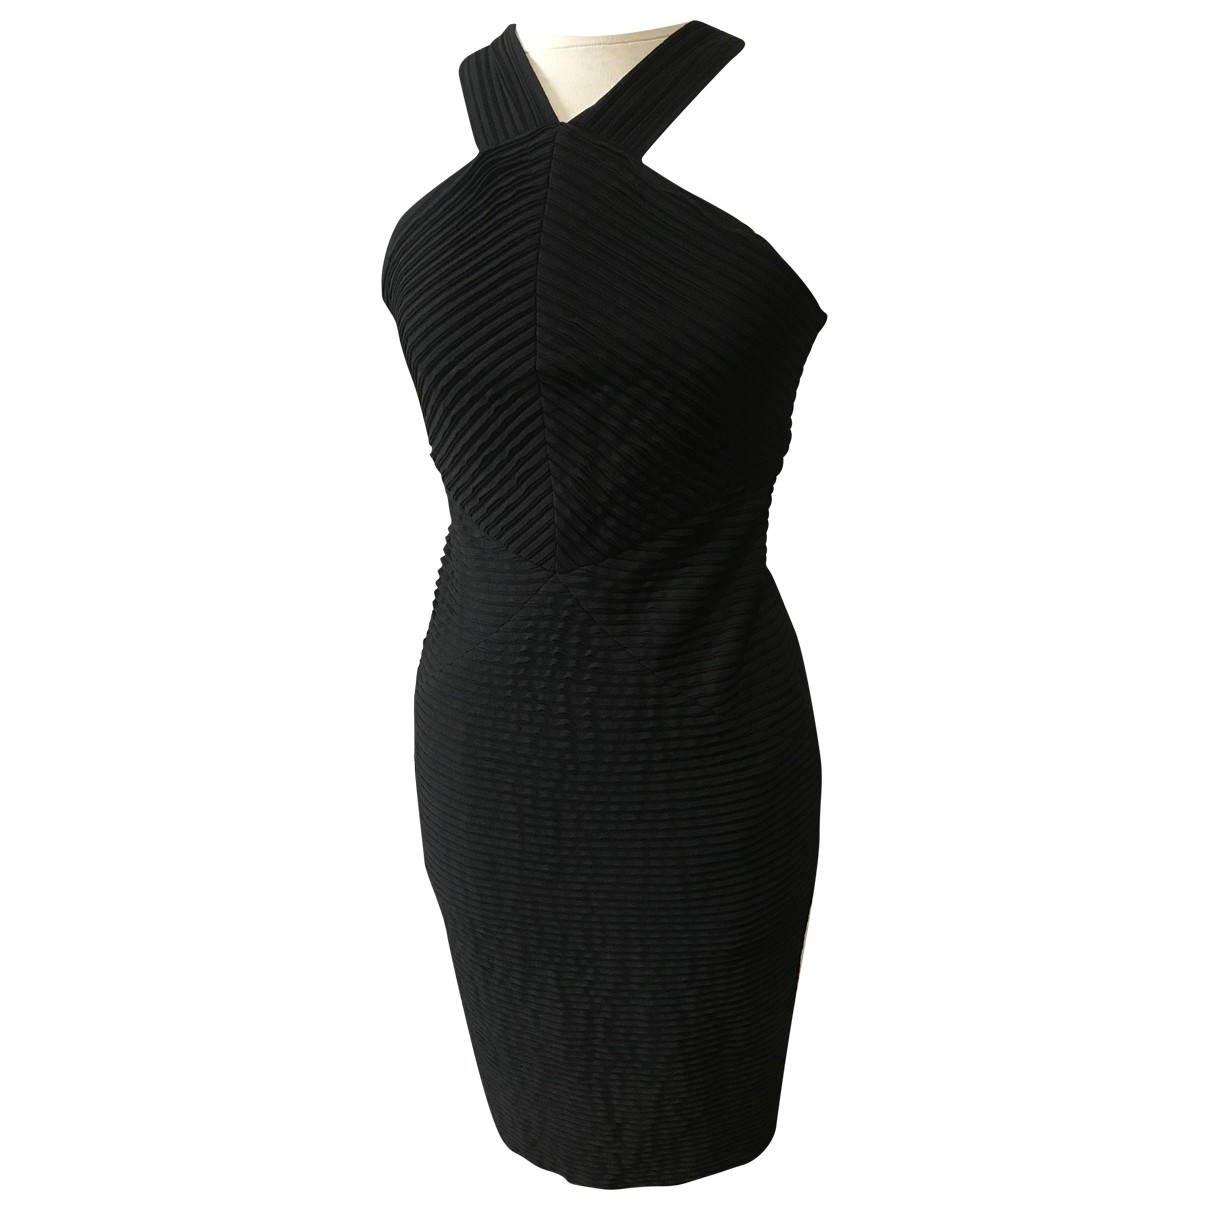 Maison Rabih Kayrouz \N Black dress for Women 40 FR